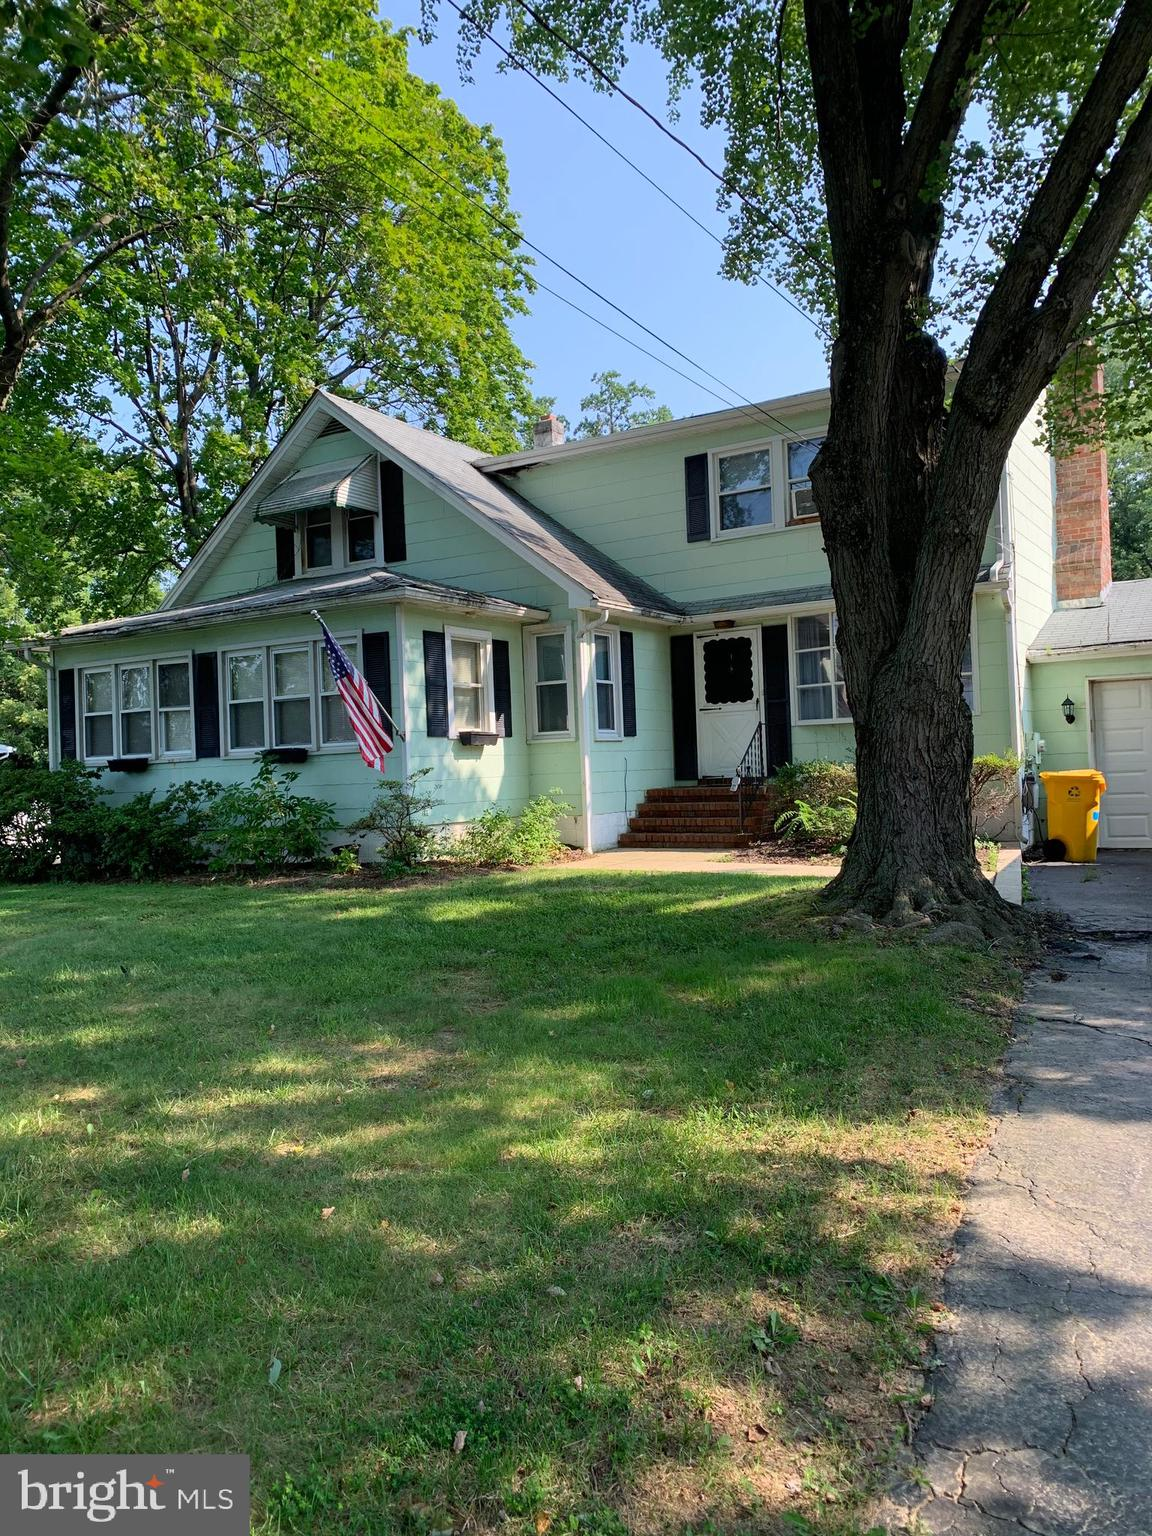 This versatile property is situated on two lots that are in the process of being divided into two separate addresses.  Great for home business, builder or family.  The house on the property is liveable but does need repairs.  Come make it your own!